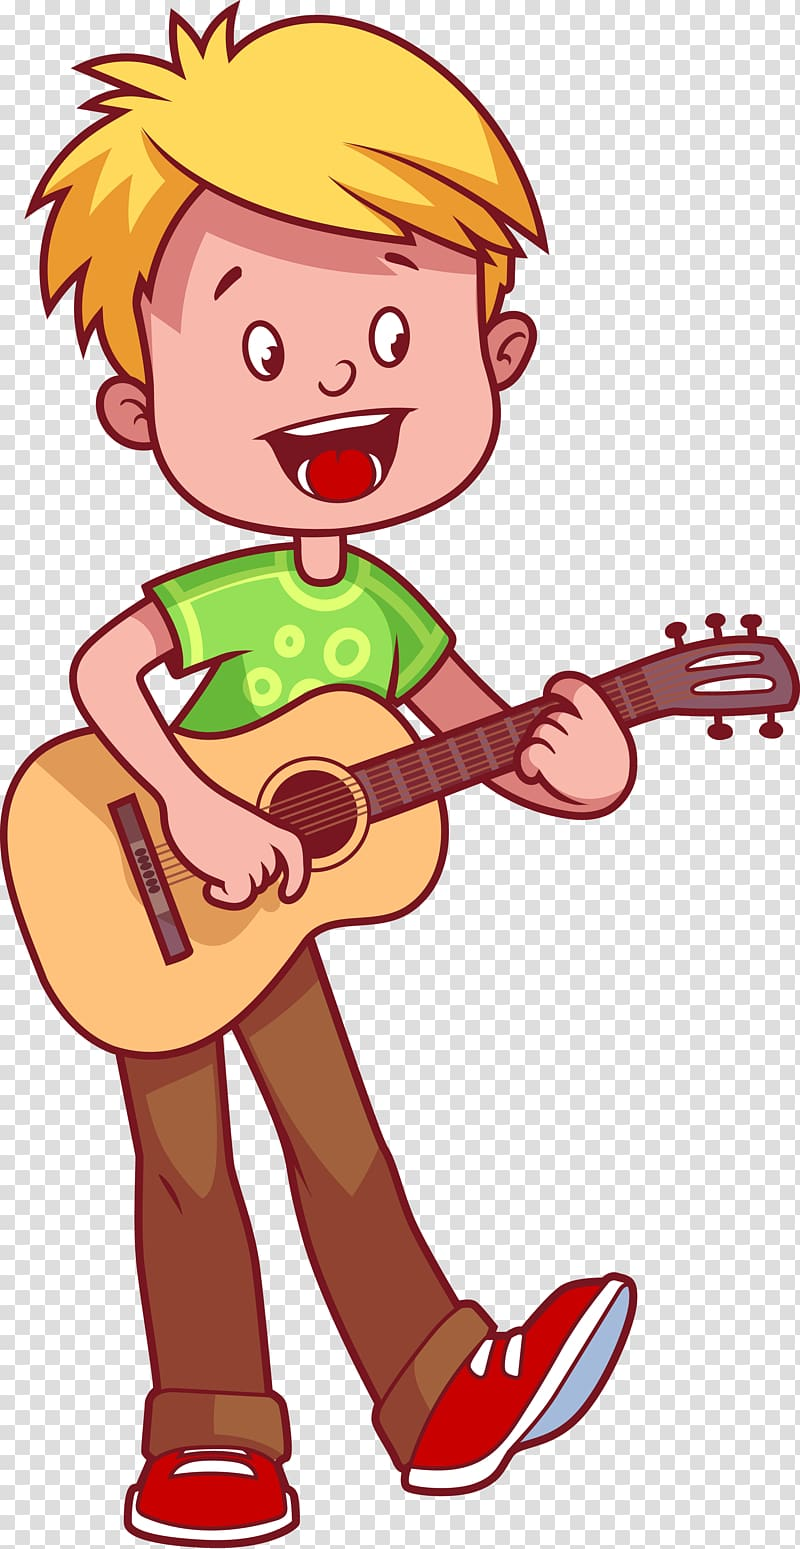 Boy play acoustic guitar, Guitar Cartoon Illustration.